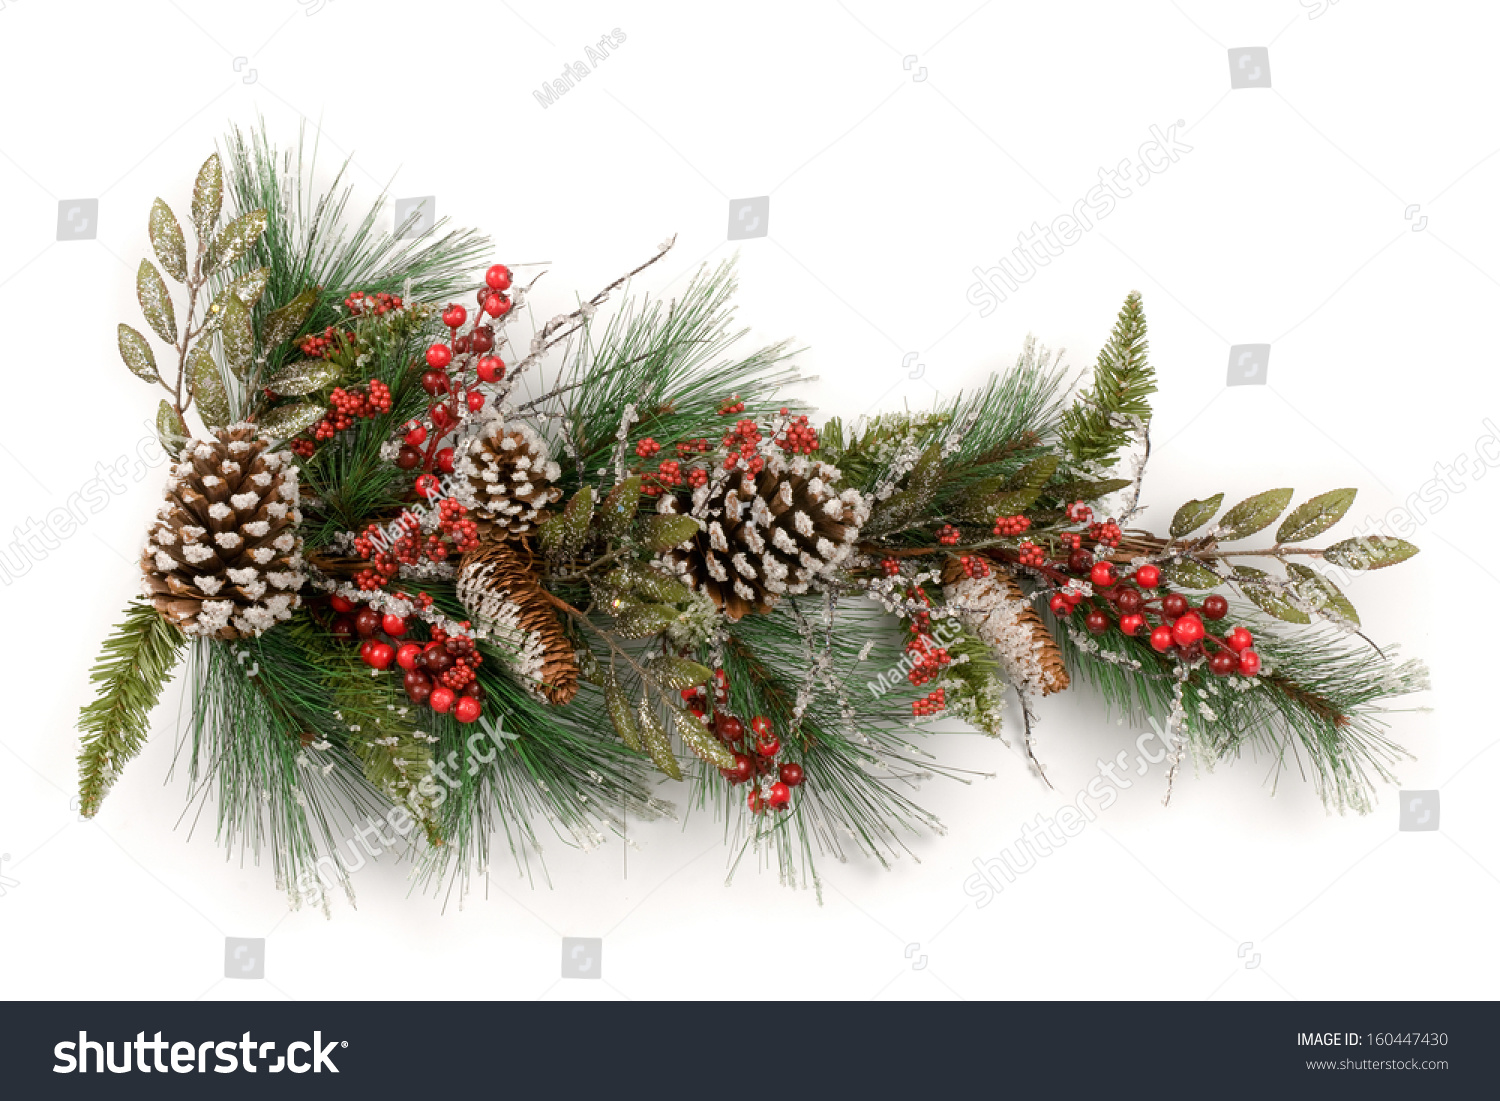 merry christmas and happy new year a christmas garland made from conifer sprigs with red